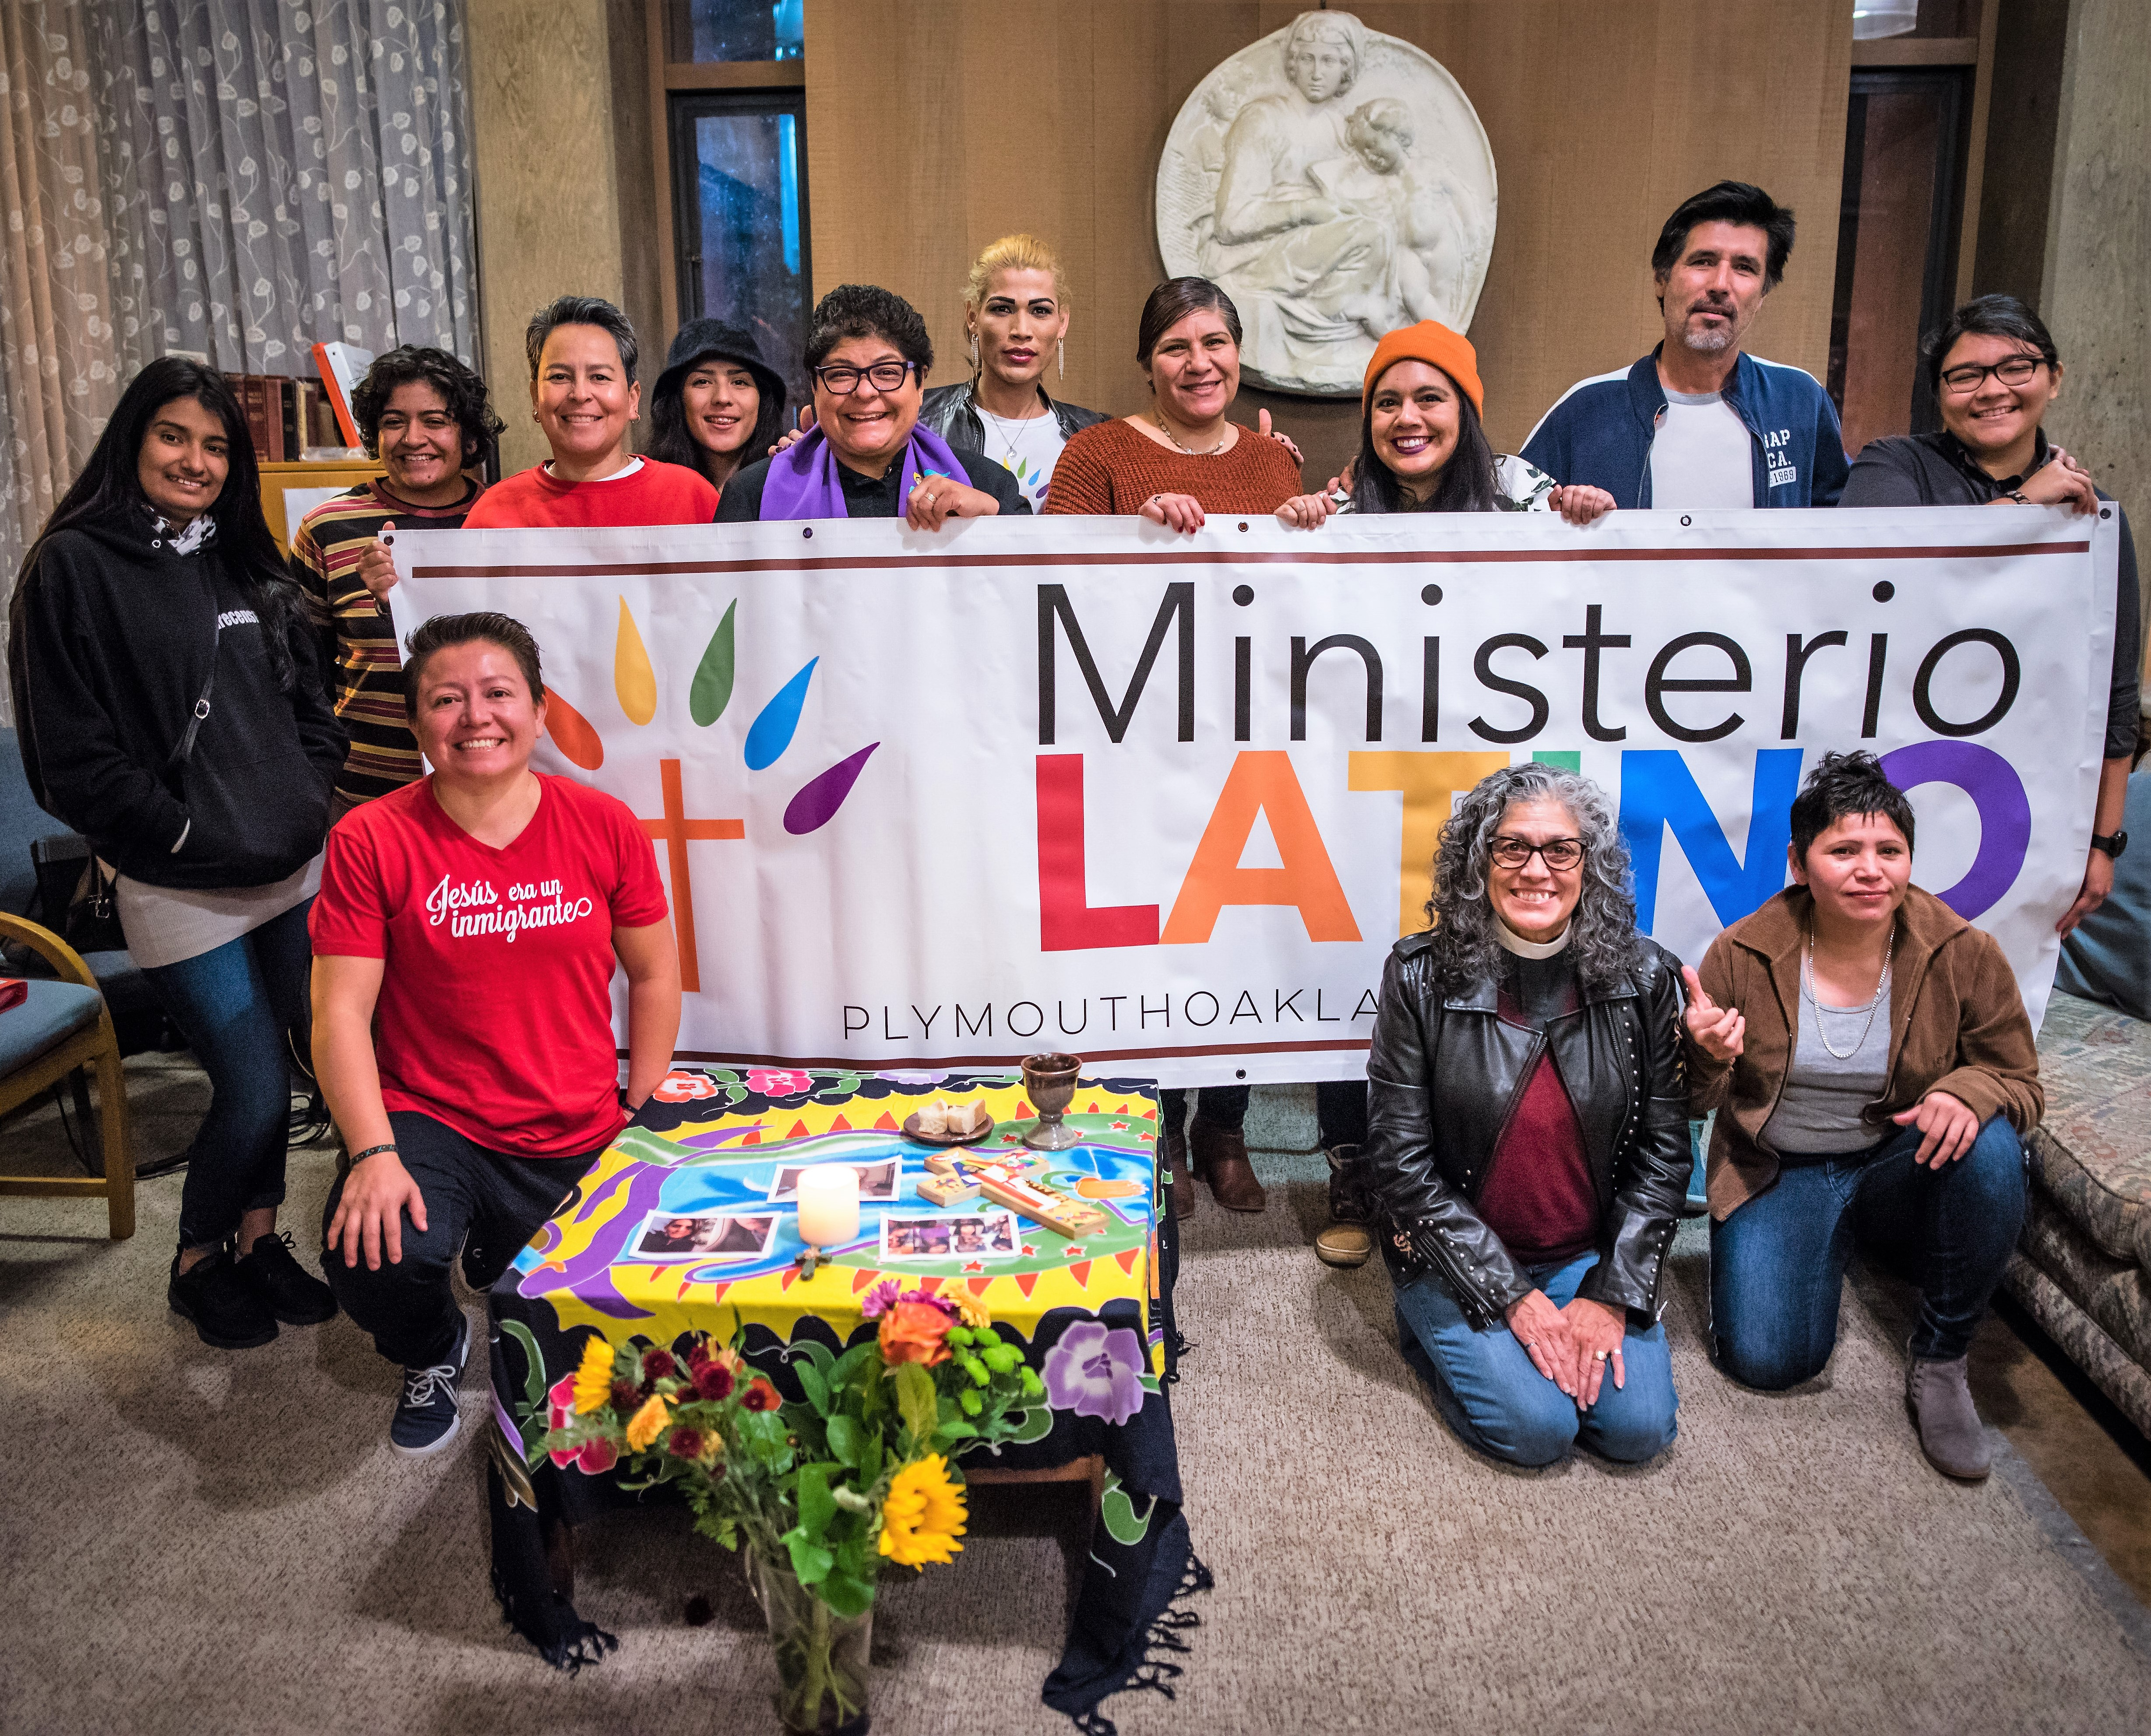 Ministerio Latino banner December 2019